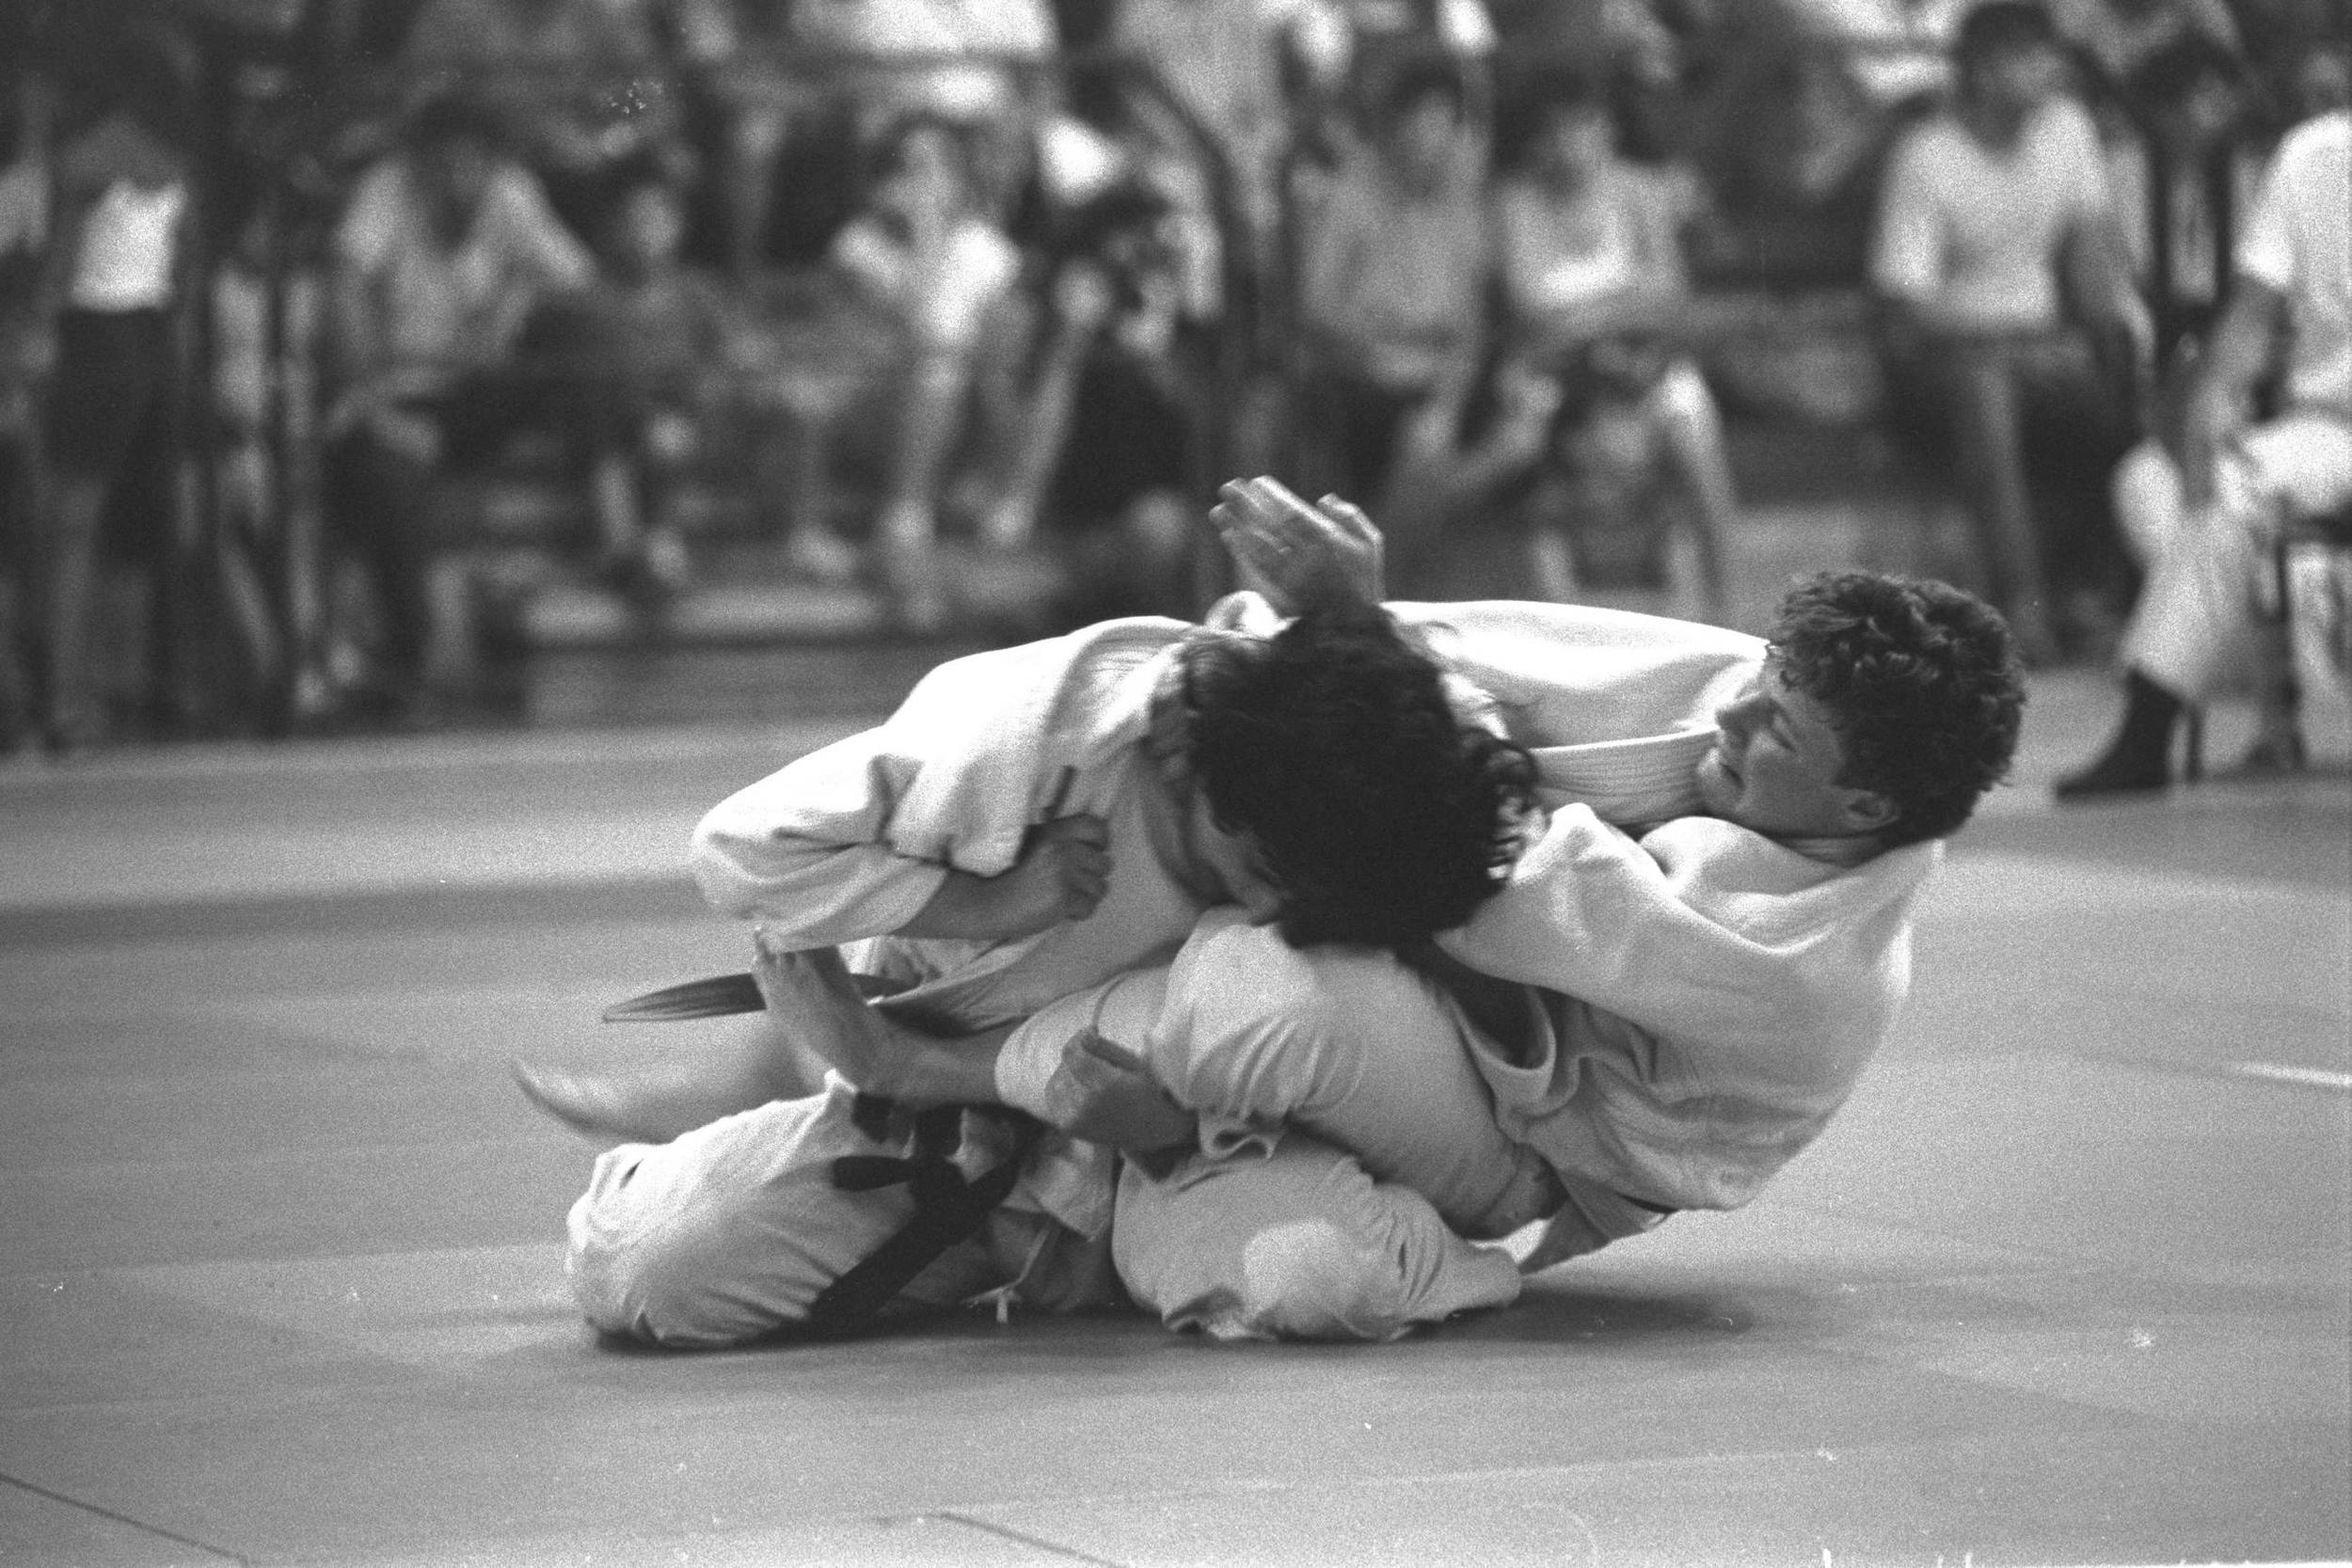 And yes, sometimes karate chopping your competition  is  necessary.